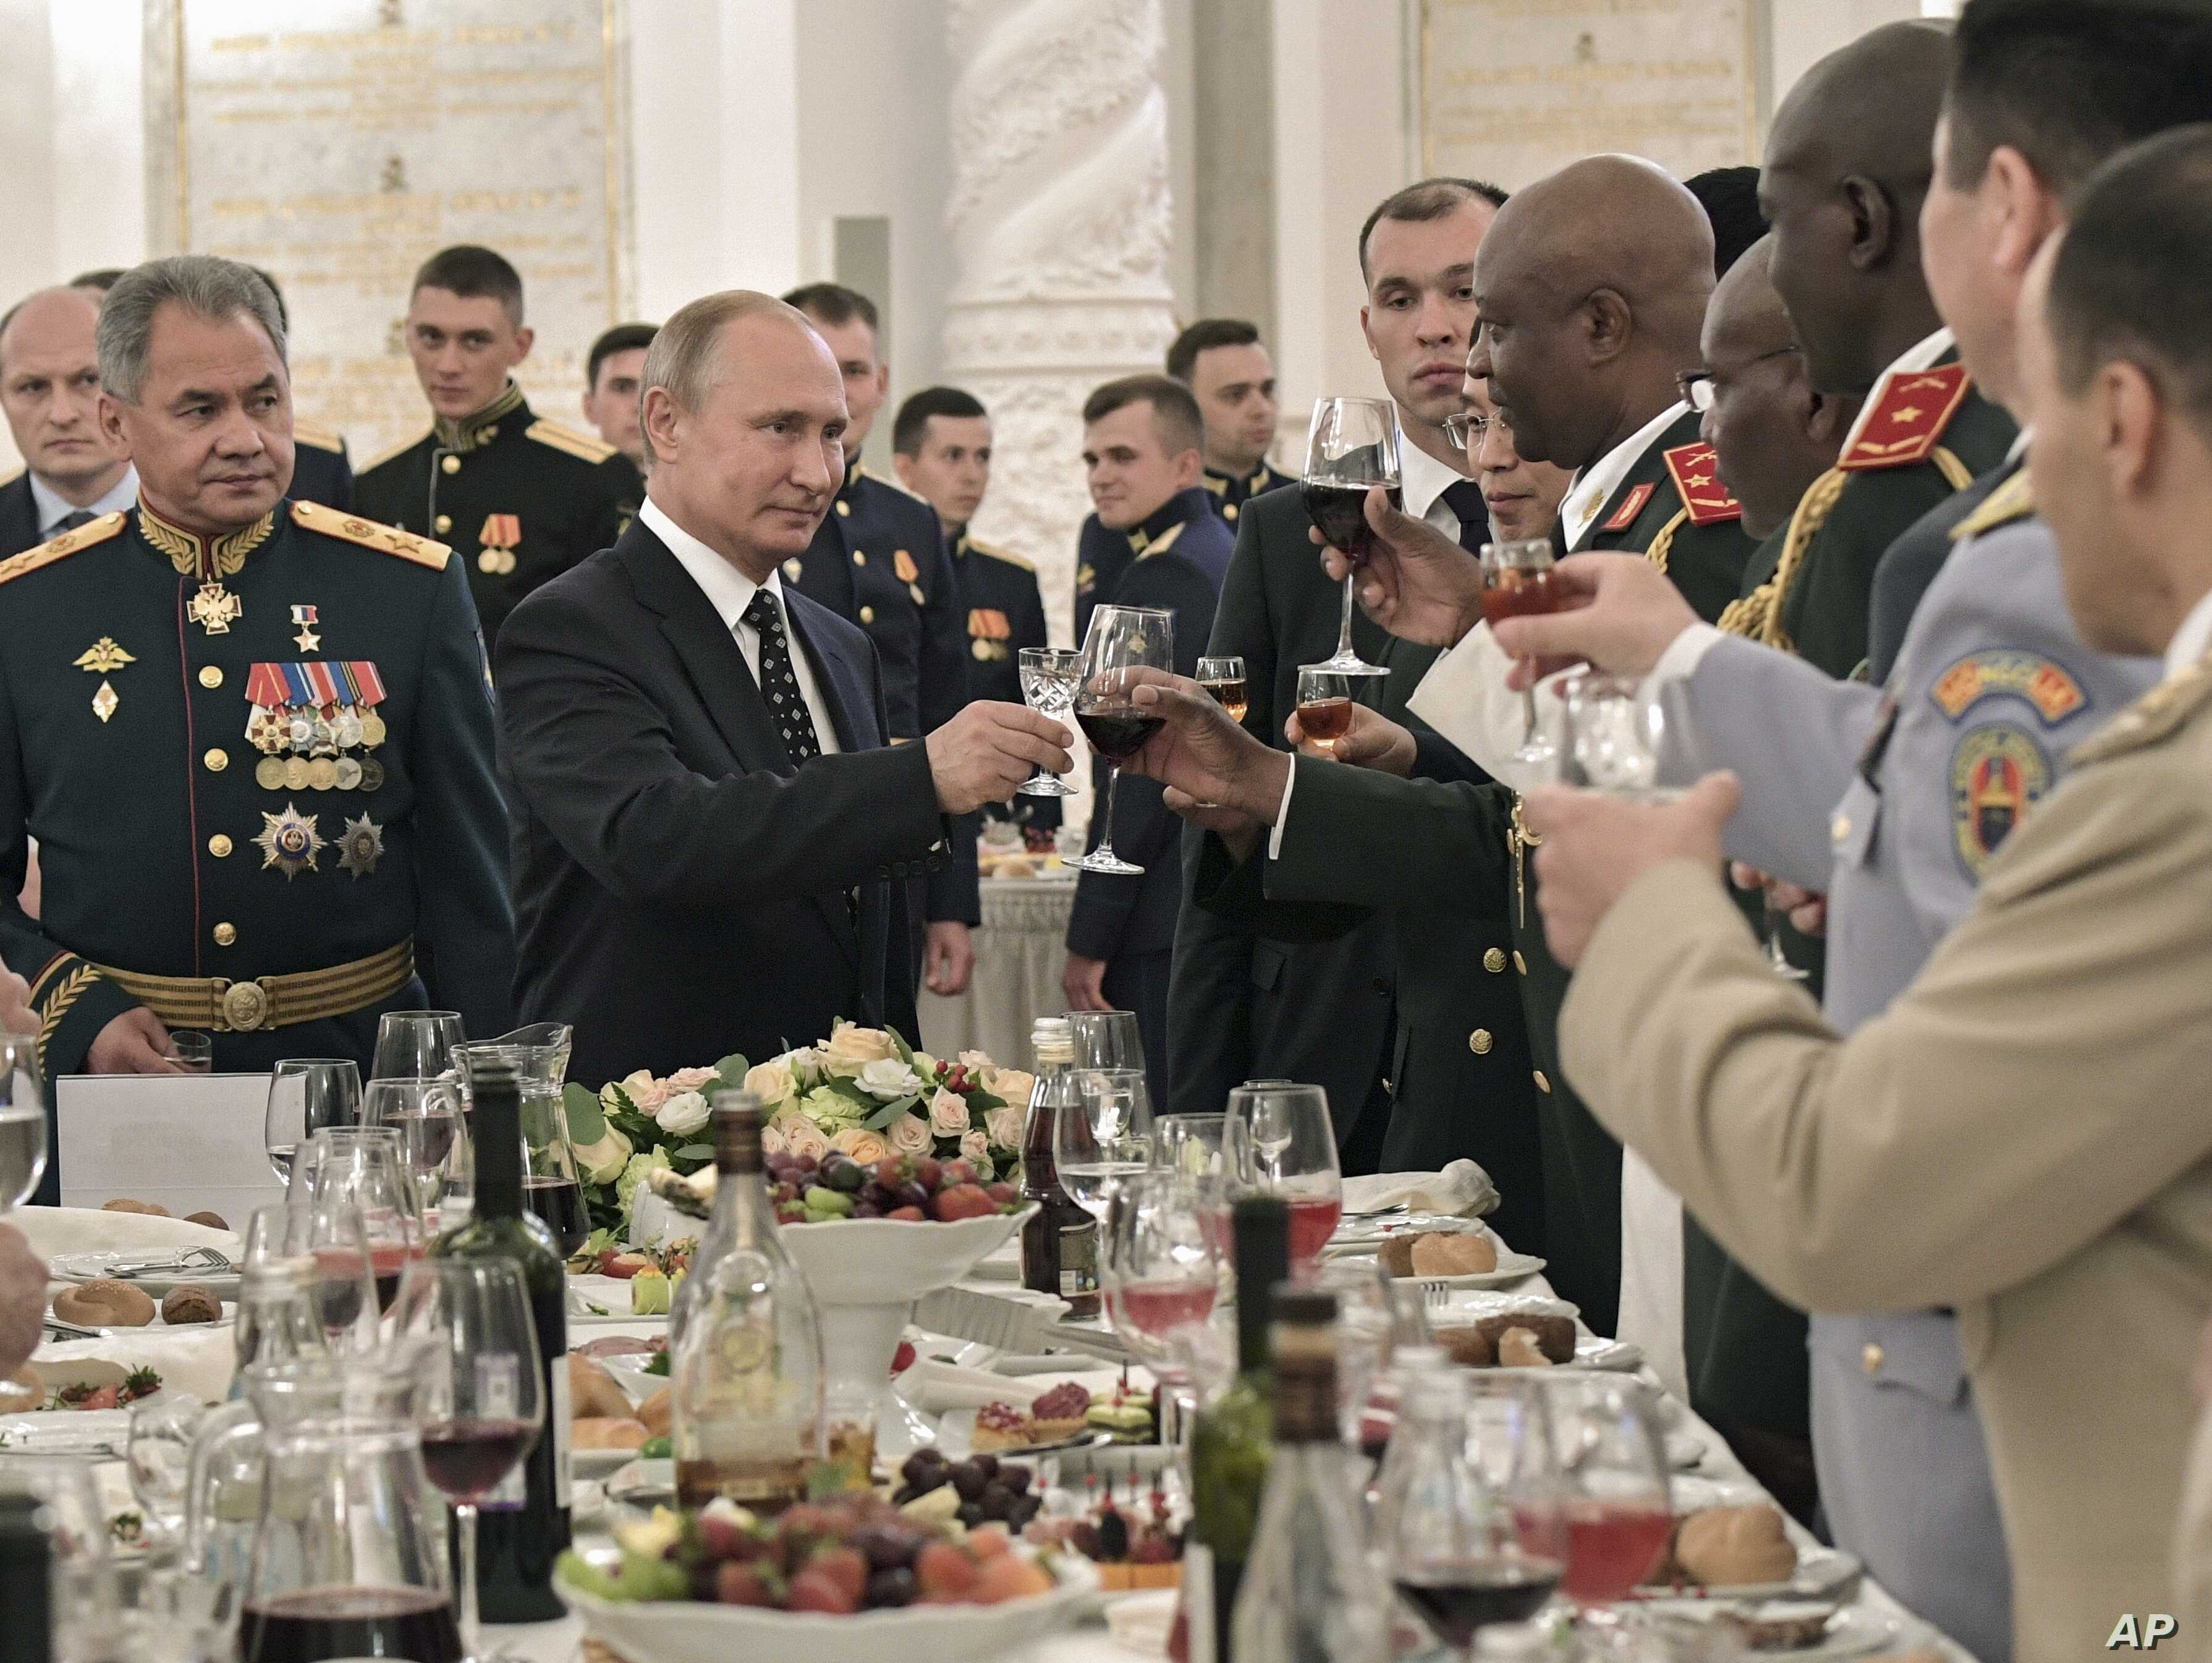 Putin New Russian Weapons Decades Ahead Of Foreign Rivals Voice Of America English